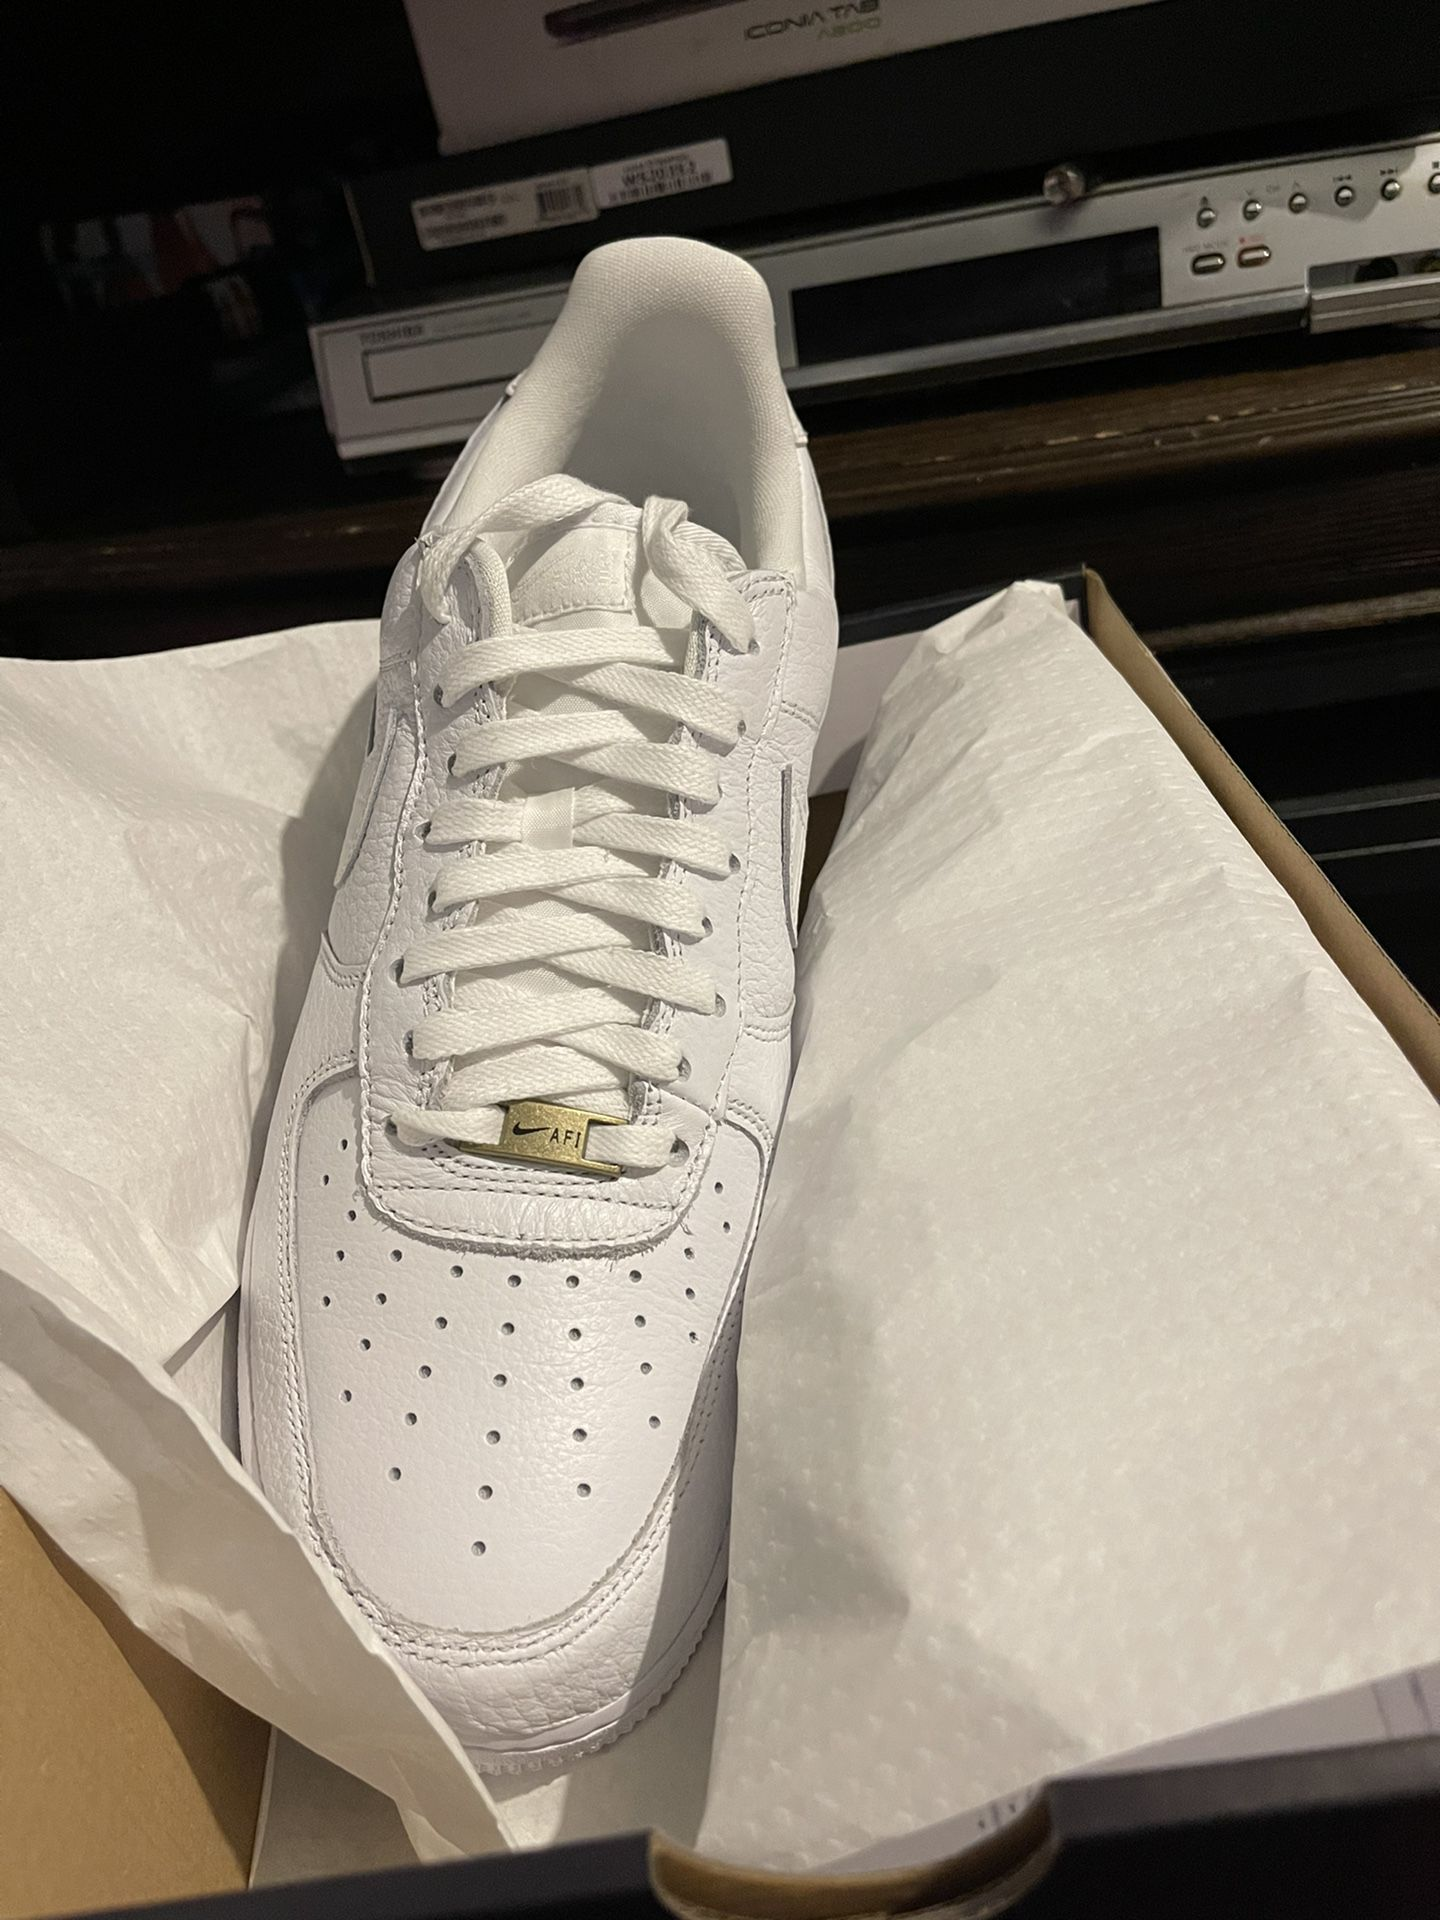 Nike Craft Air Force Ones $125 FIRM…….SIZE 11.5